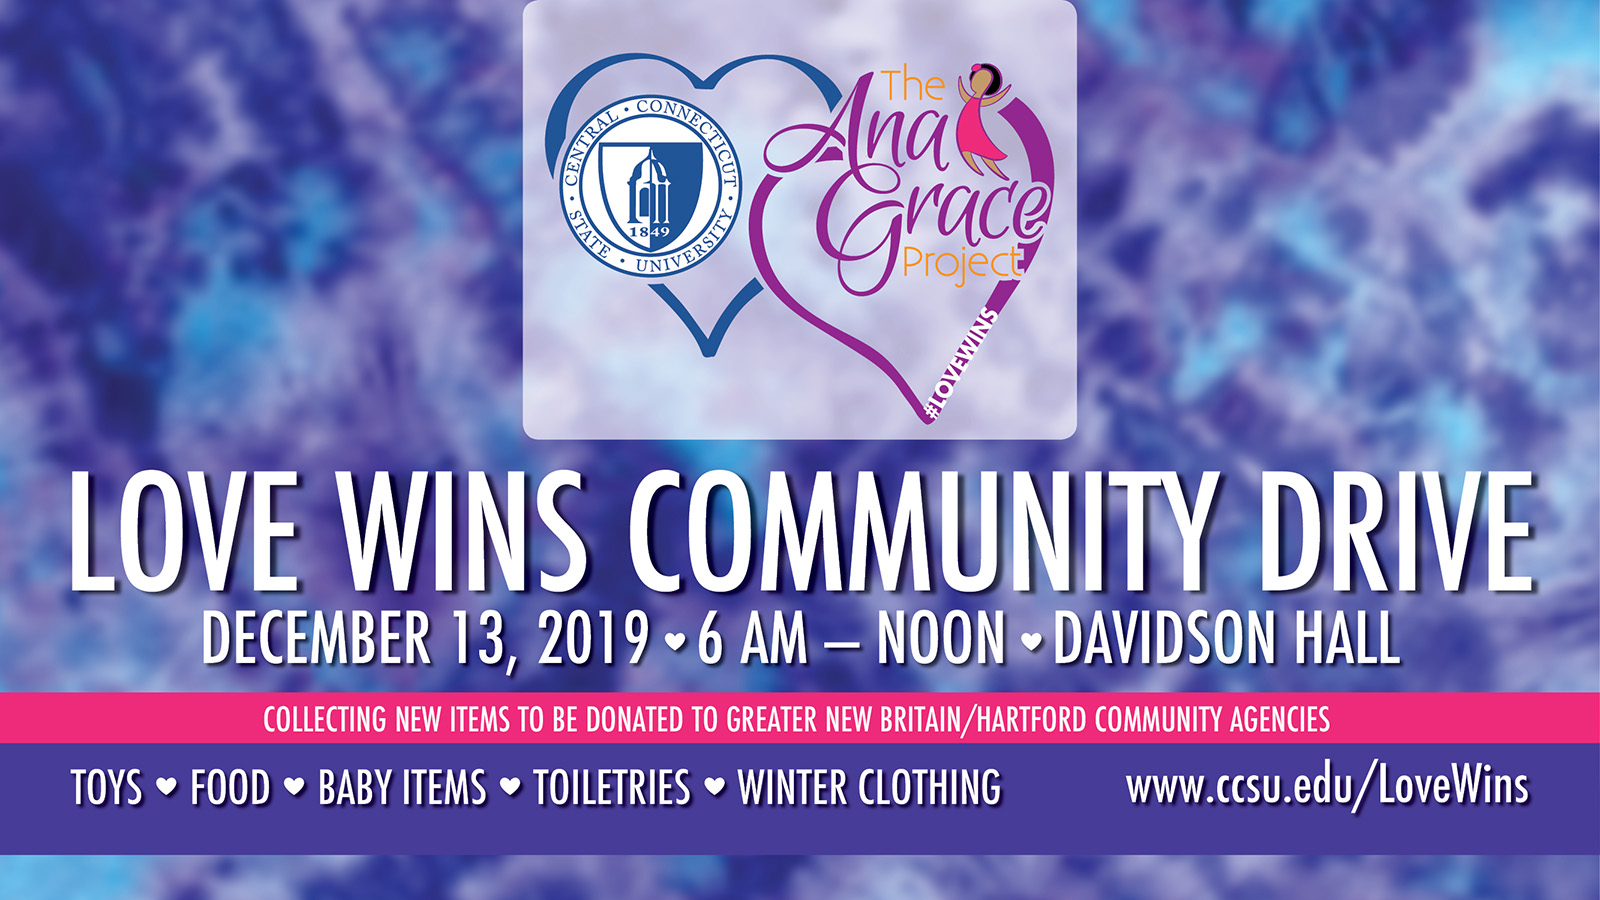 Community comes together for Love Wins drive